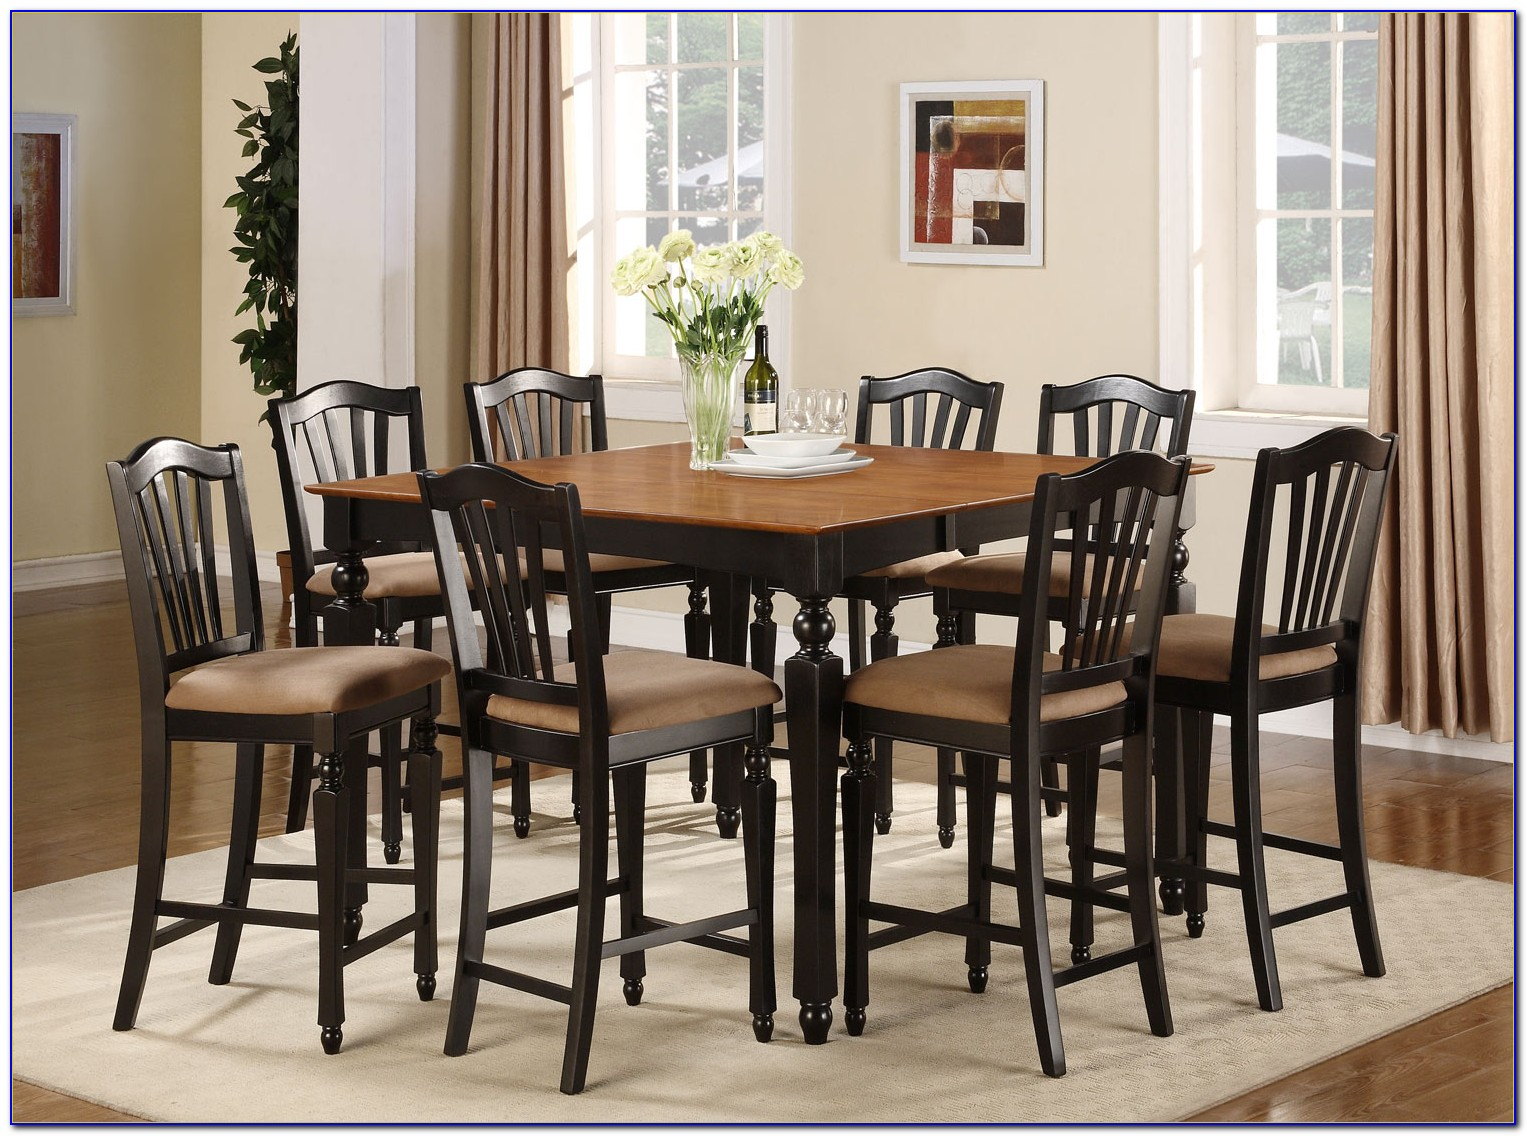 Expandable Pub Table With Chairs